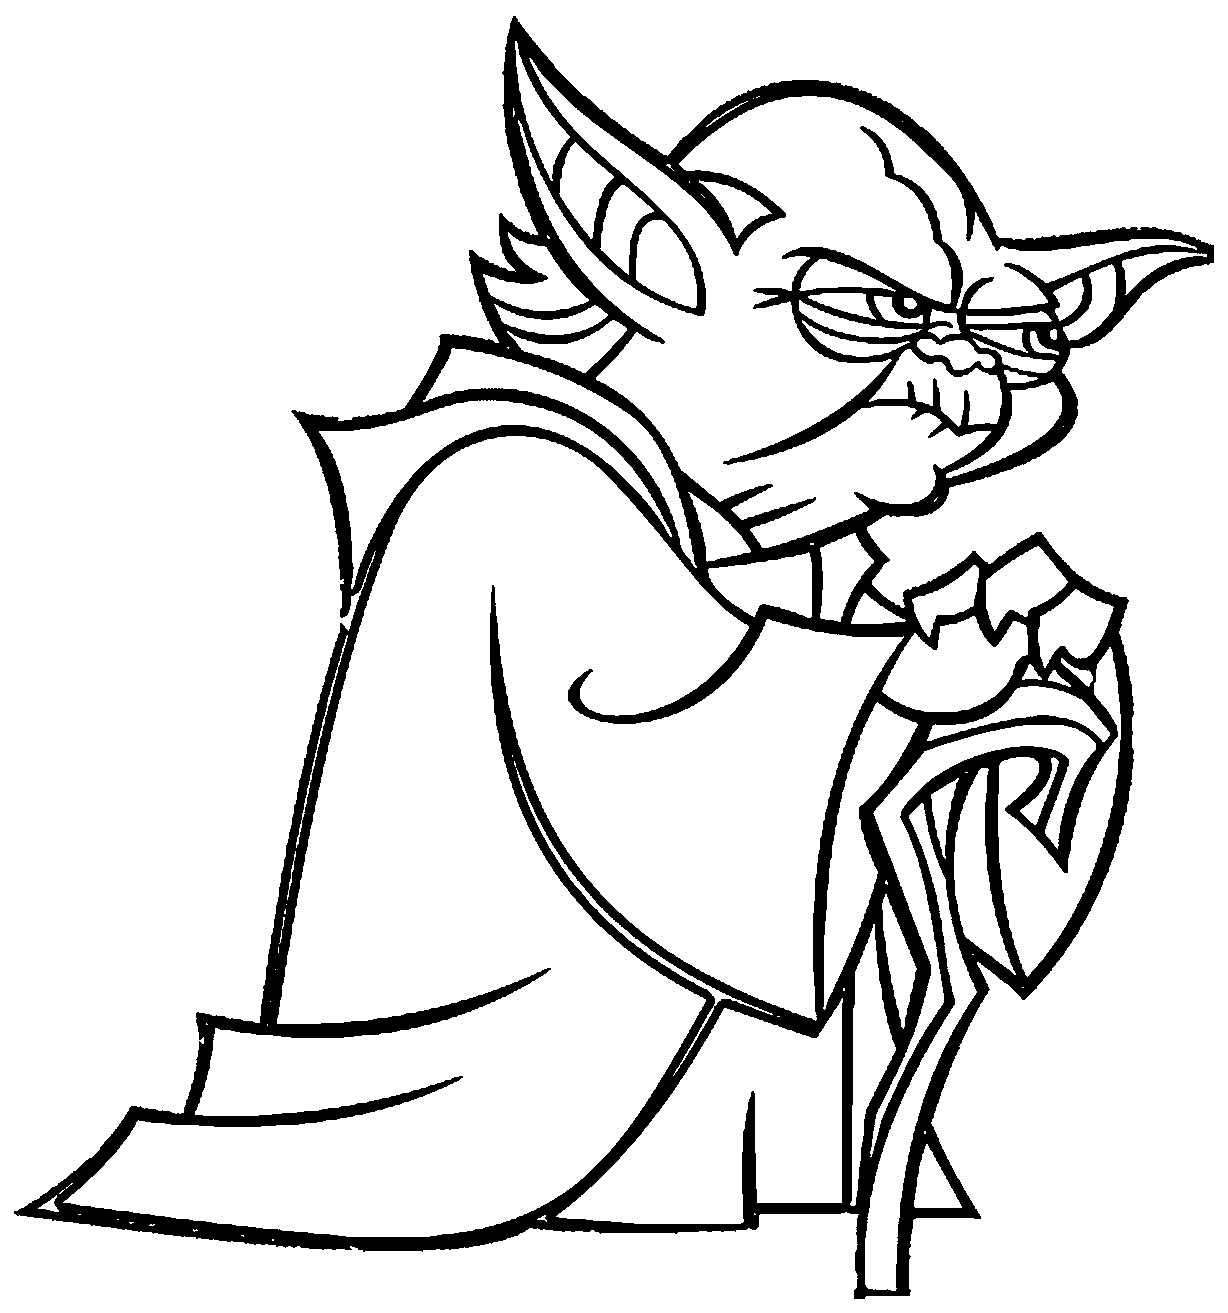 Yoda From Star Wars Free Coloring Page Kids Movies Arresting Pages Collection Of Fresh Star Wars Coloring Pages to Print